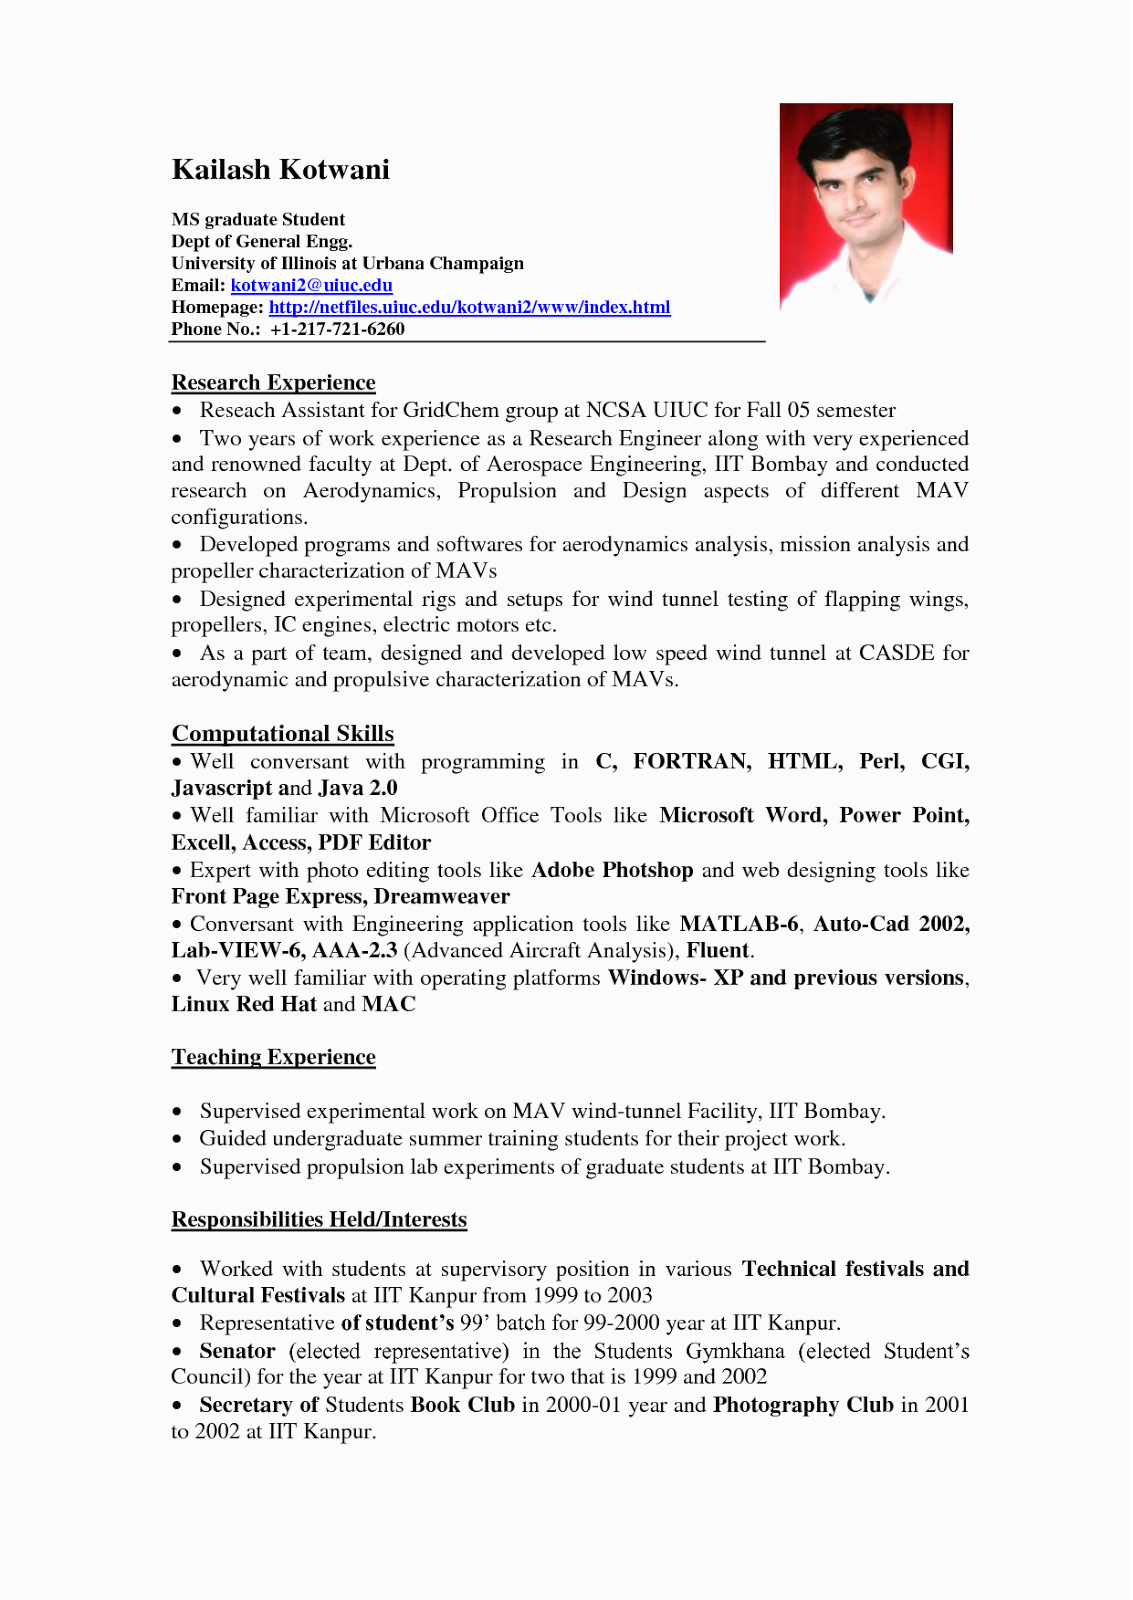 resume sample for fresh graduate without experience